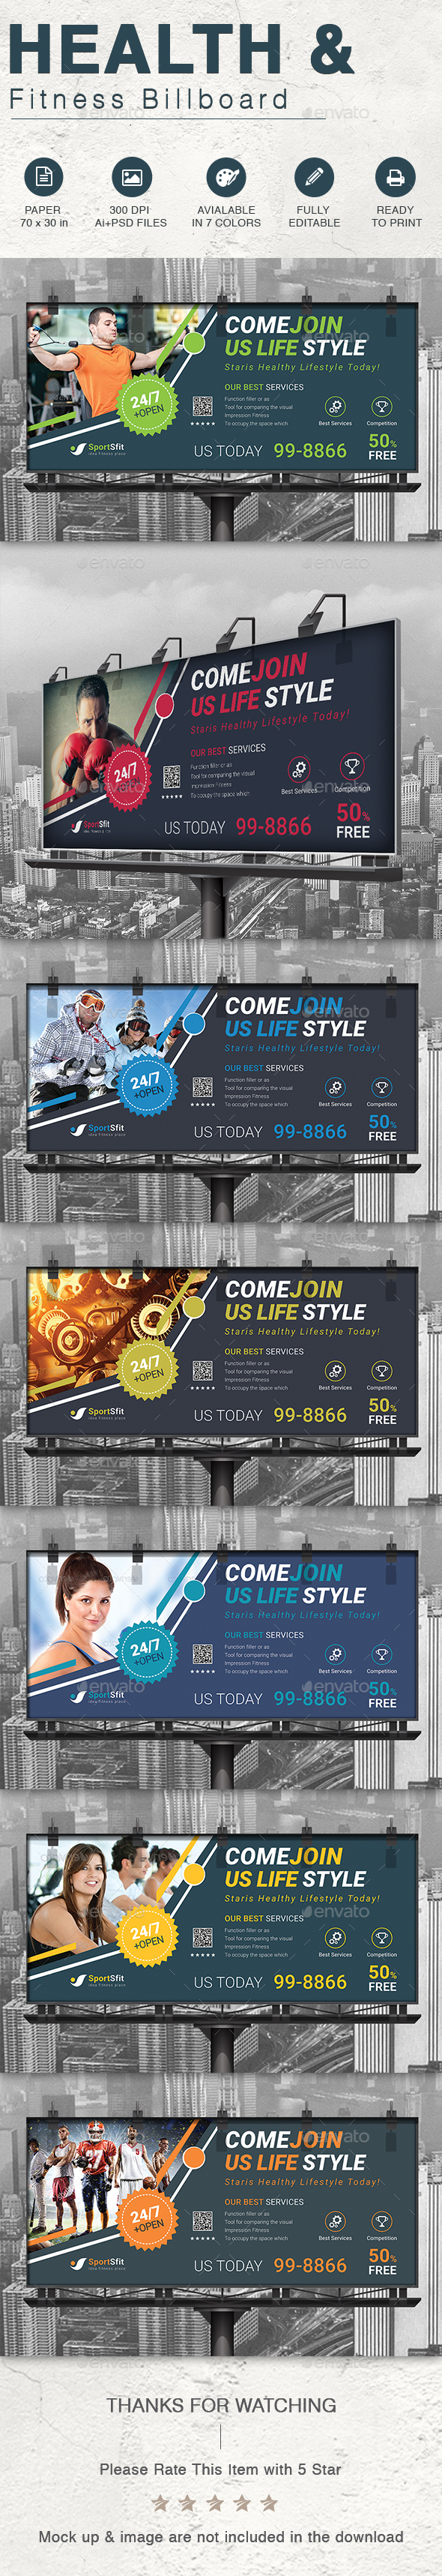 Health & Fitness Billboard - Signage Print Templates